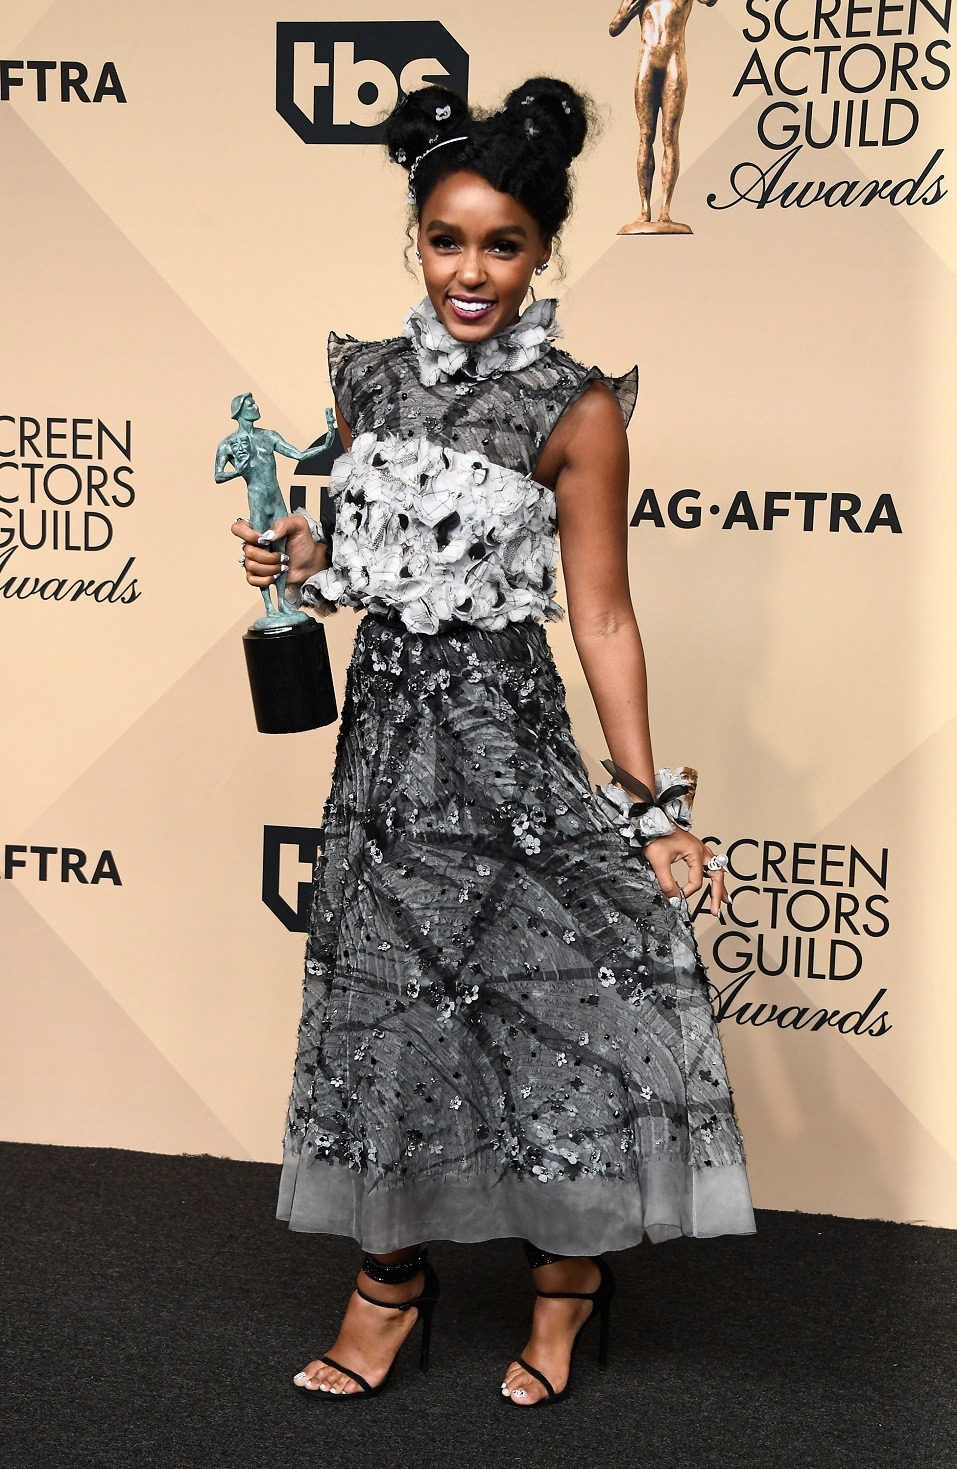 Actor Janelle Monae, co-recipient of the Outstanding Performance